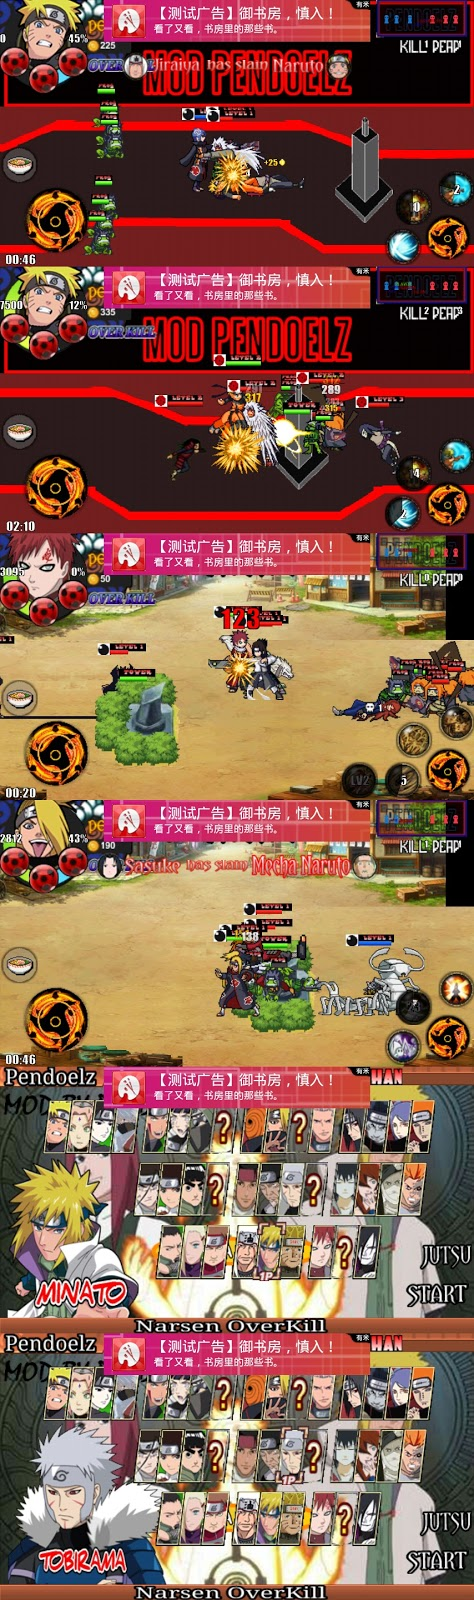 Naruto Senki Overkill Second Version (Fixed 2) Mod Apk Terbaru